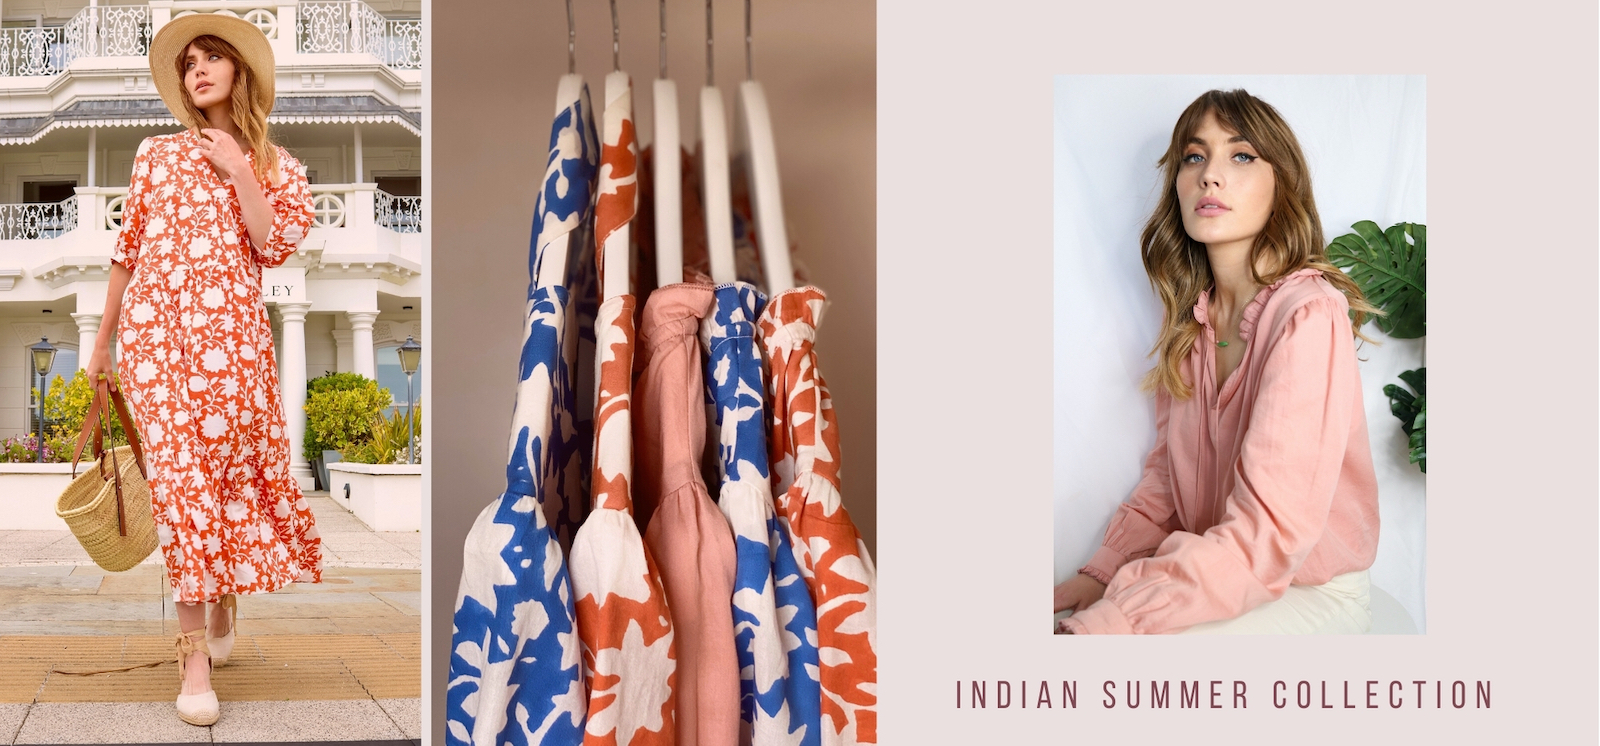 fwp by rae | Indian summer collection